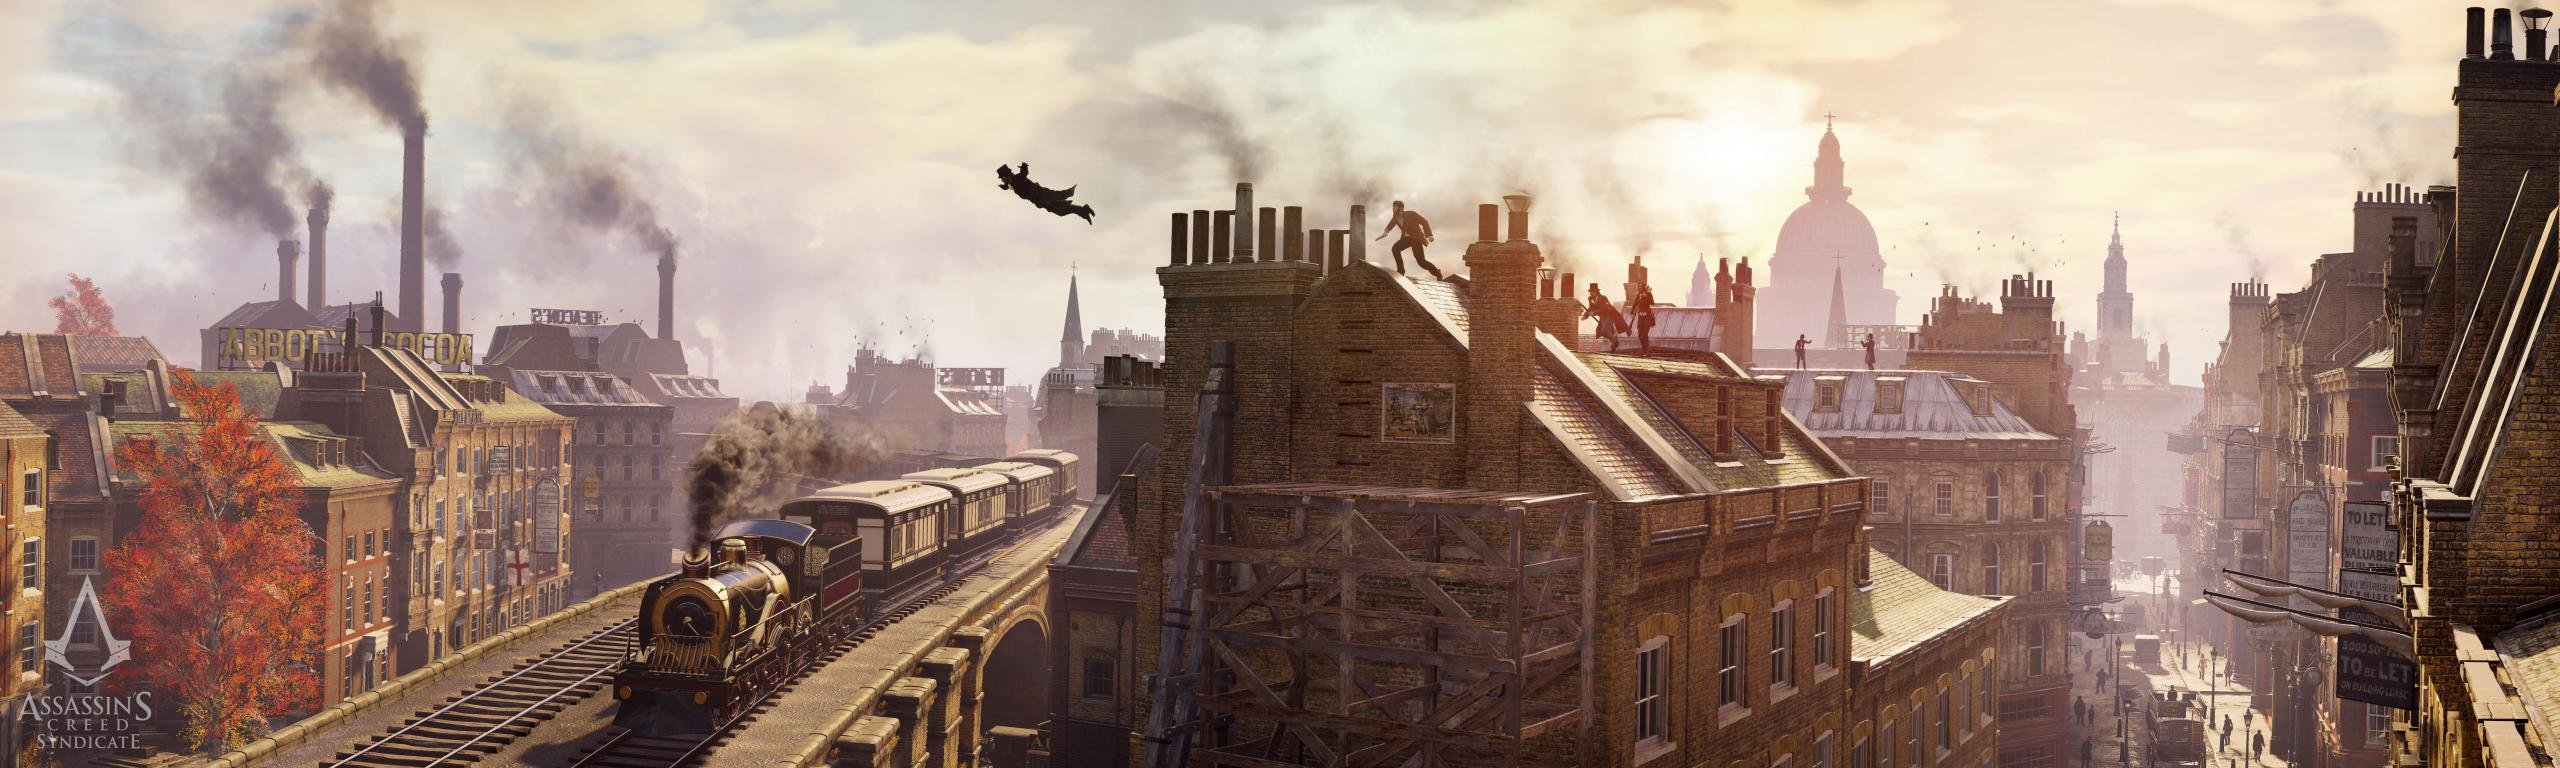 Free Assassin's Creed: Syndicate high quality wallpaper ID:260258 for dual screen 2560x768 desktop